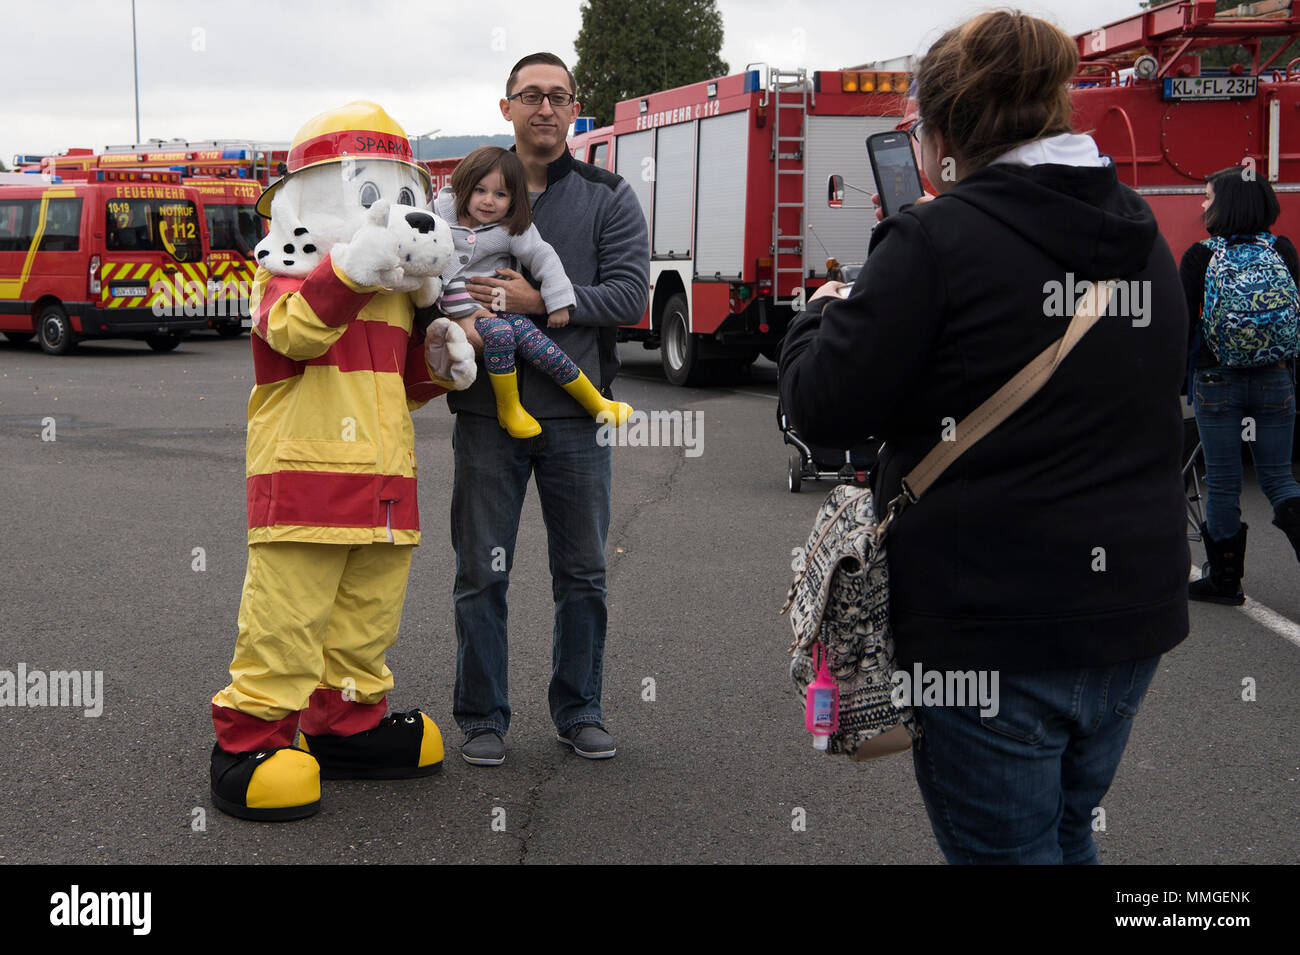 """Members of the Kaiserslautern Military Community take a photo with Sparky the fire dog during the Fire Prevention Week open house on Ramstein Air Base, Germany, Oct. 7, 2017. Fire Departments from Ramstein Village, Landstuhl, Carlsberg, and Technical Relief Foundation (THW) Kaiserslautern, participated in the parade and open house. This year's theme, """"Every second counts, plan two ways out!"""" encourages families to have more than one exit plan in case of an emergency. (U.S. Air Force photo by Airman 1st Class Devin M. Rumbaugh) - Stock Image"""